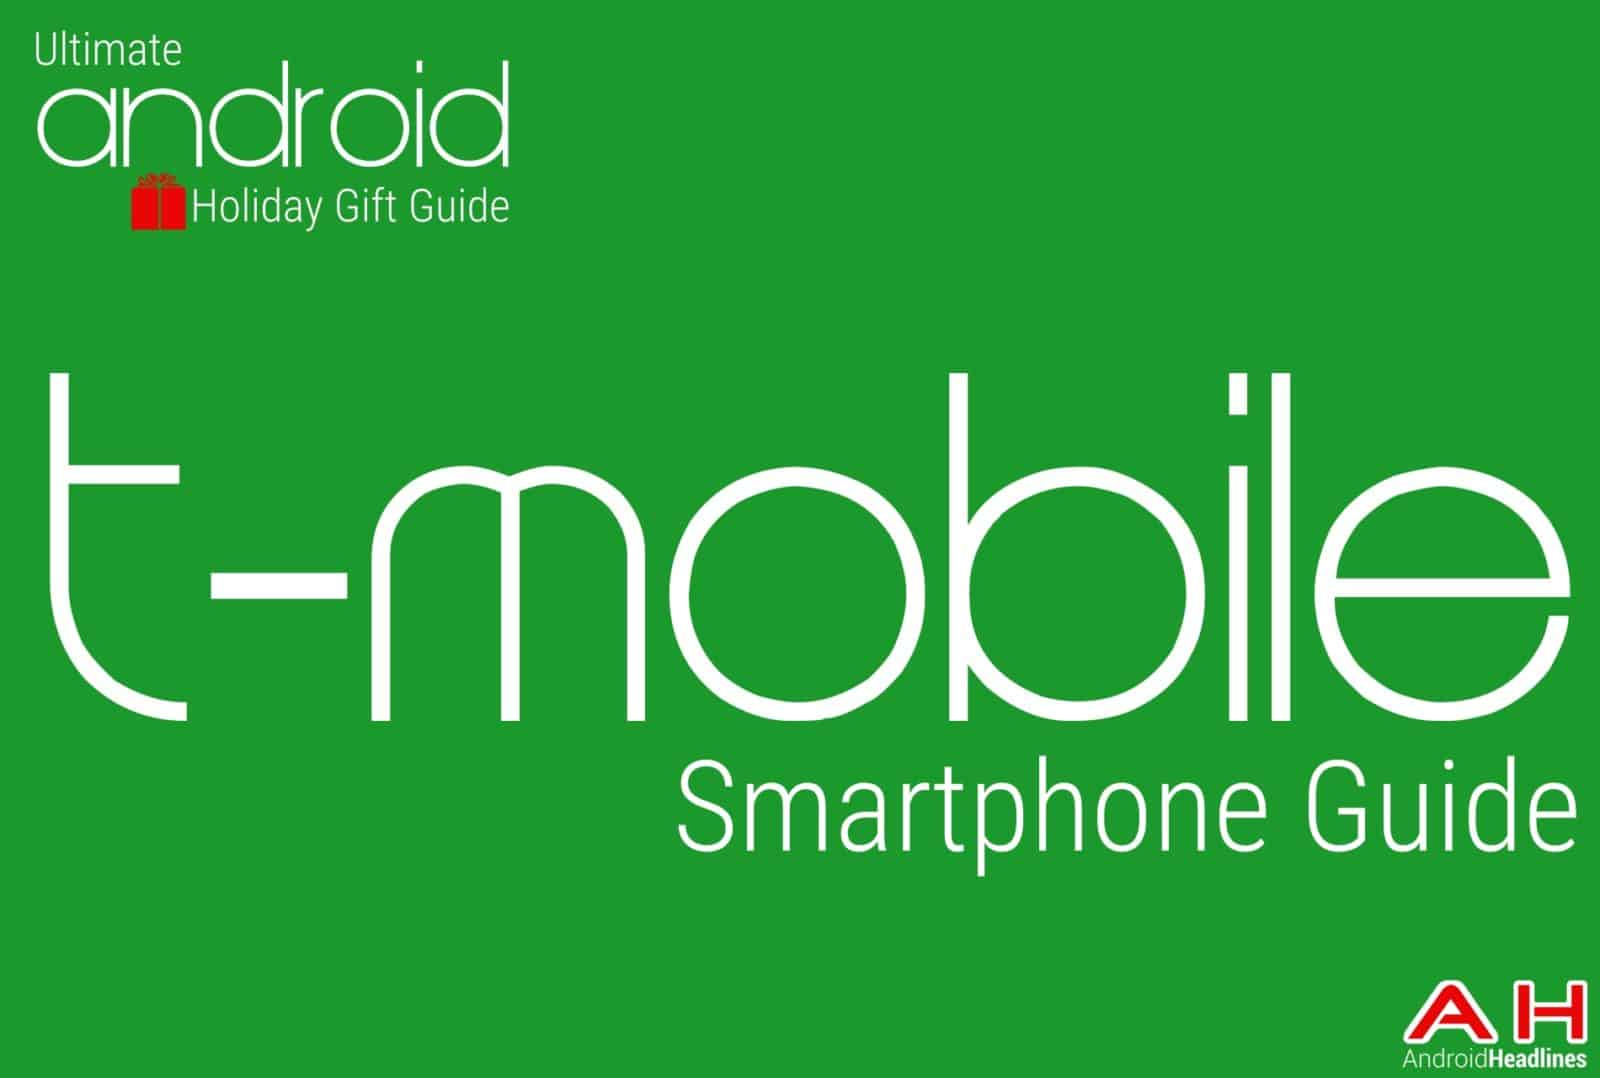 Android t-mobile Smartphones Guide - Holiday Gift Guide Main Image